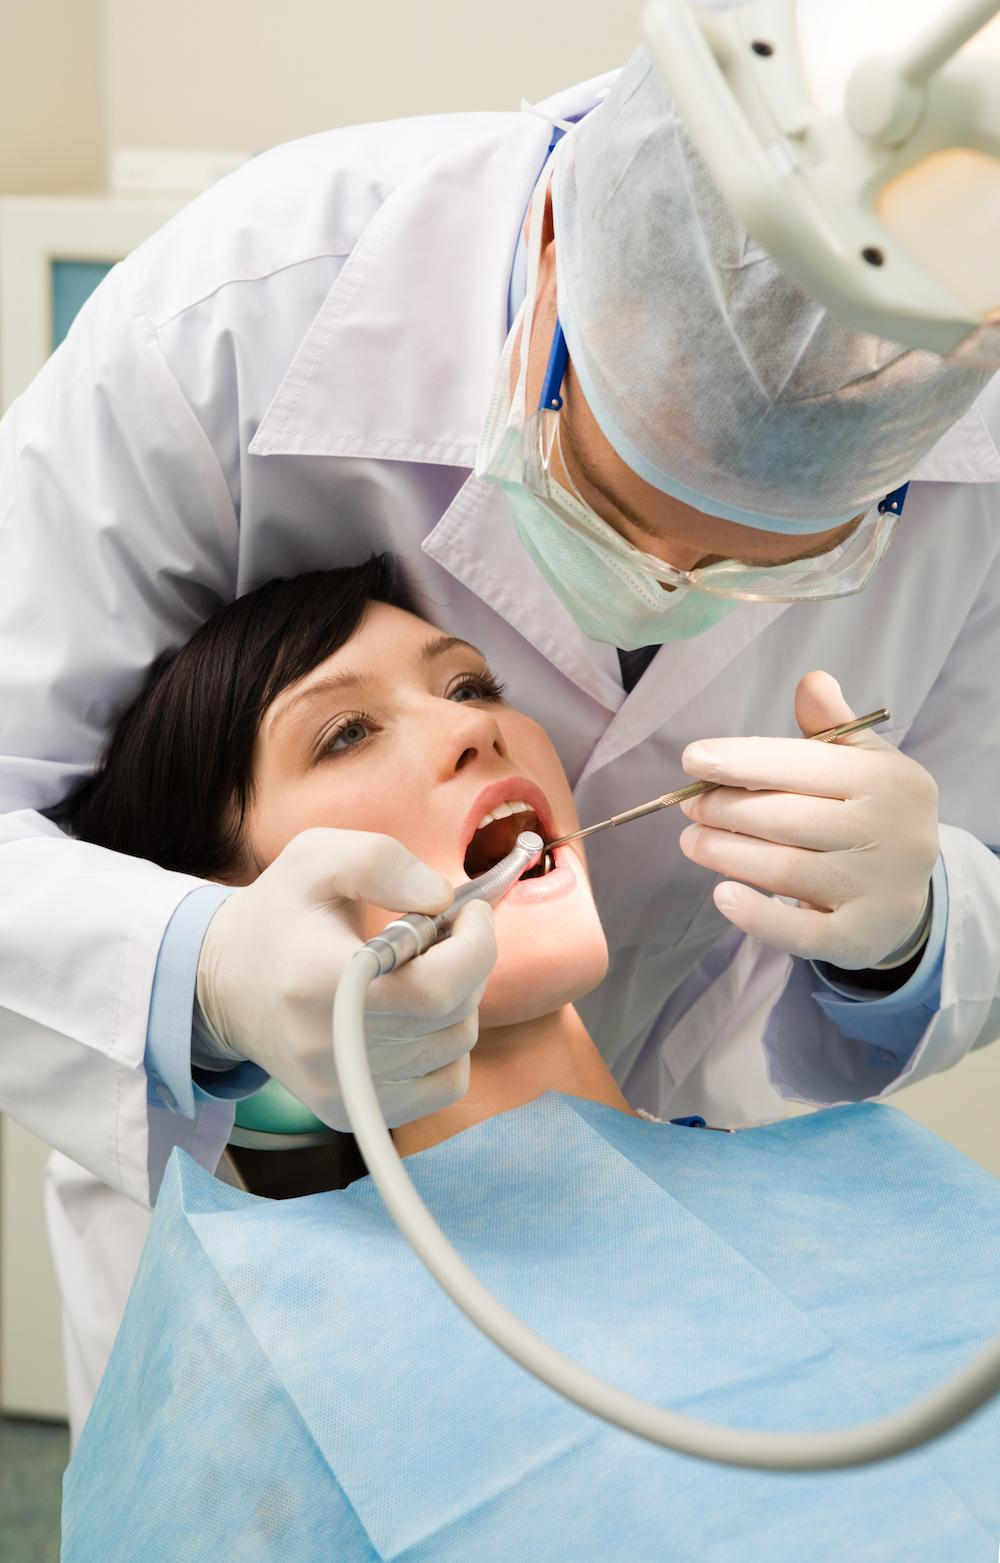 Take care of your teeth with regular dental check-ups and cleanings